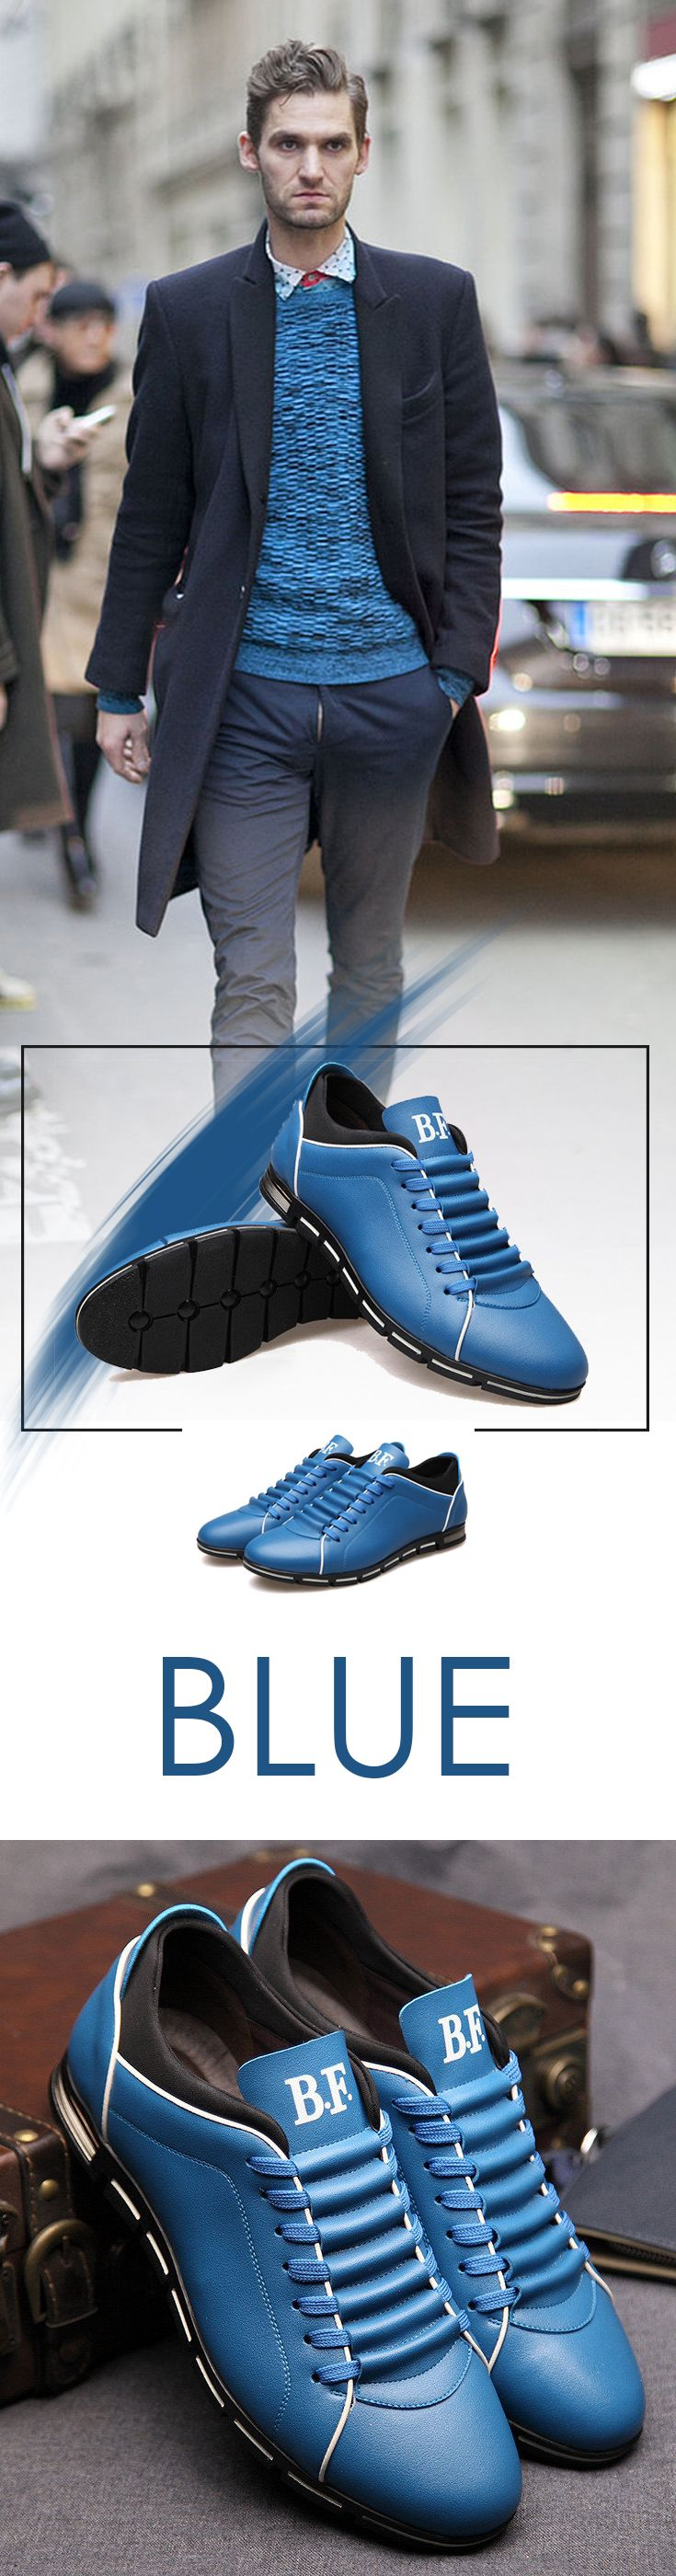 Men's British Urban shoes - Clean style and look at the best value - #streetstyle men's attire style brand affordable fashion UK leather casual sneaker #mensshoes #menstyle #menfashion #menstyle